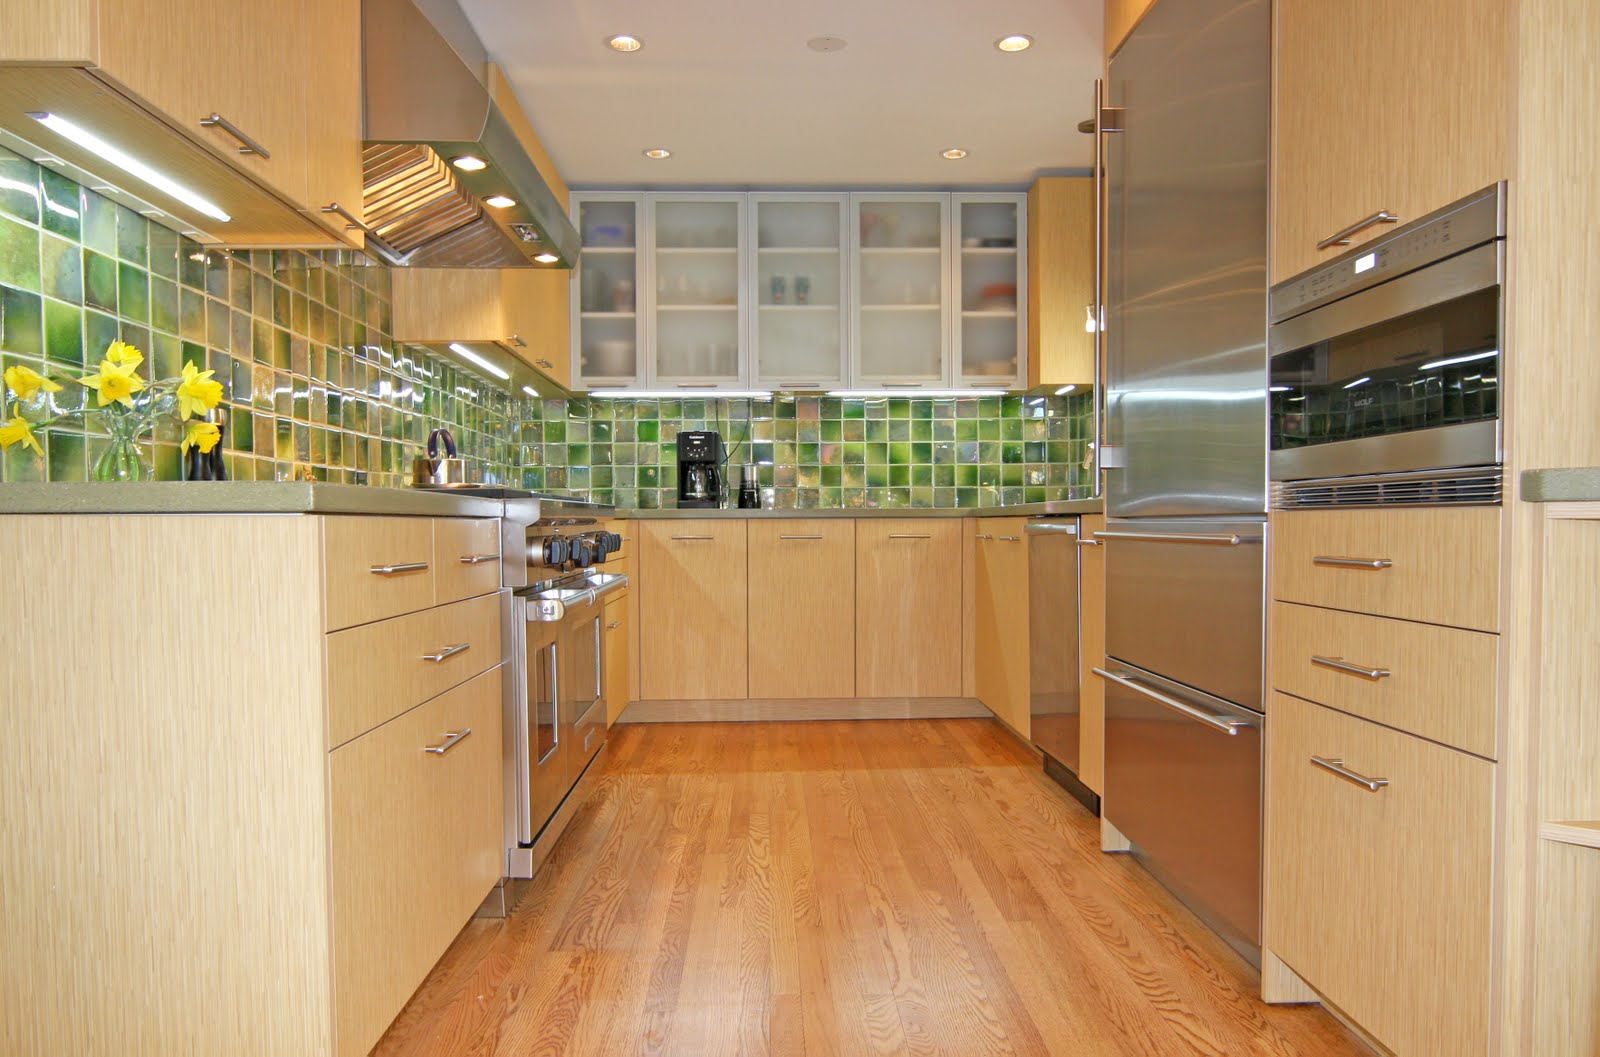 3ccchicago green remodel gourmet galley kitchen remodel for Galley kitchen designs